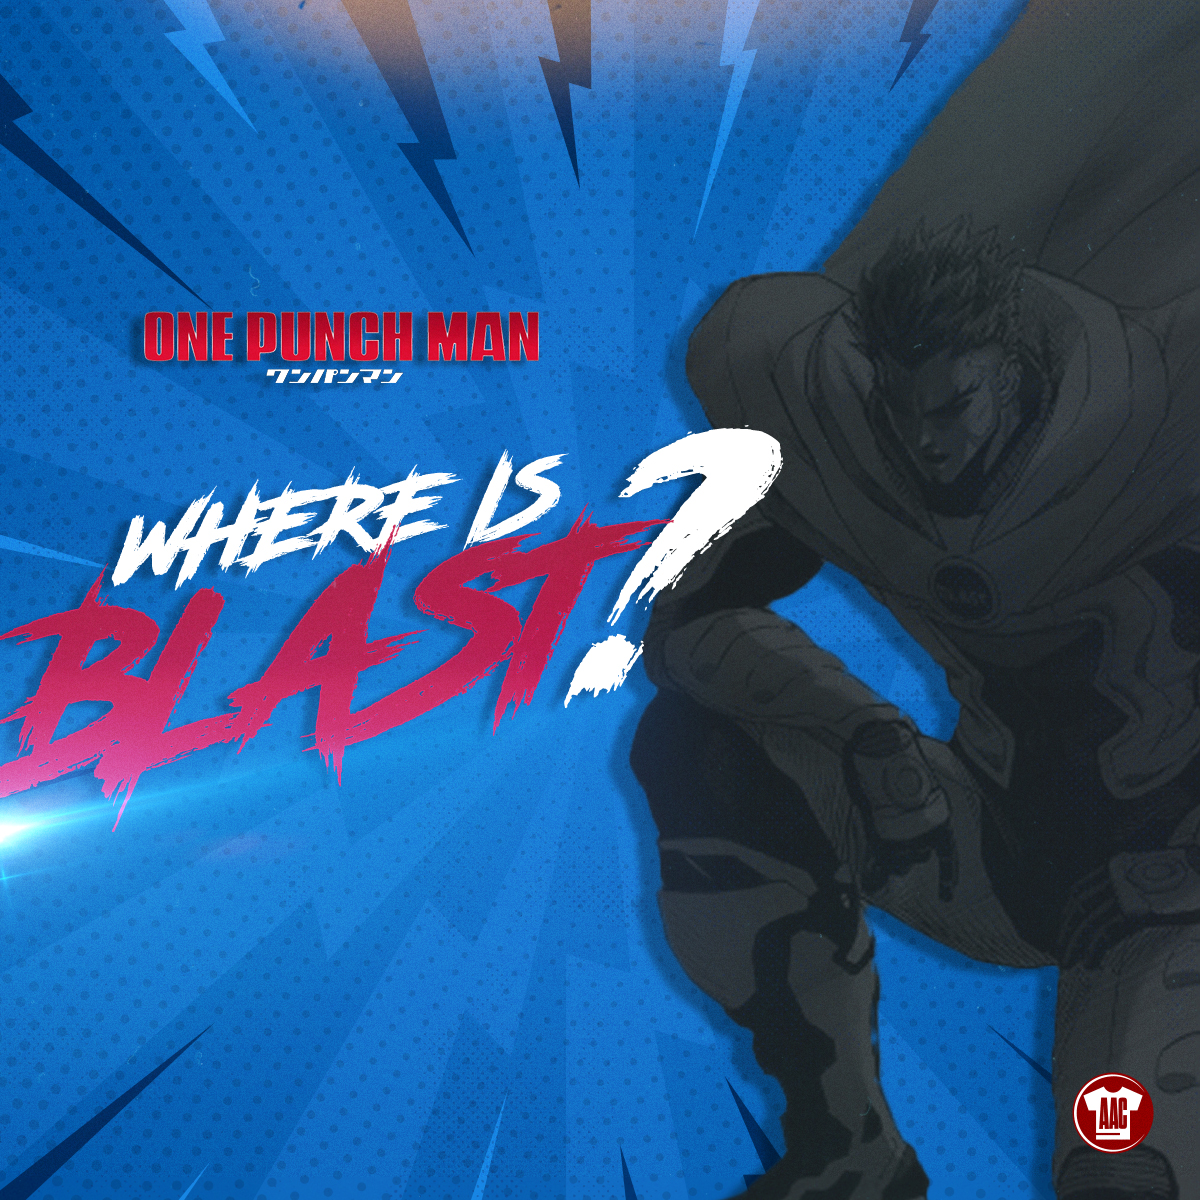 One Punch Man Theory - Where is Blast?